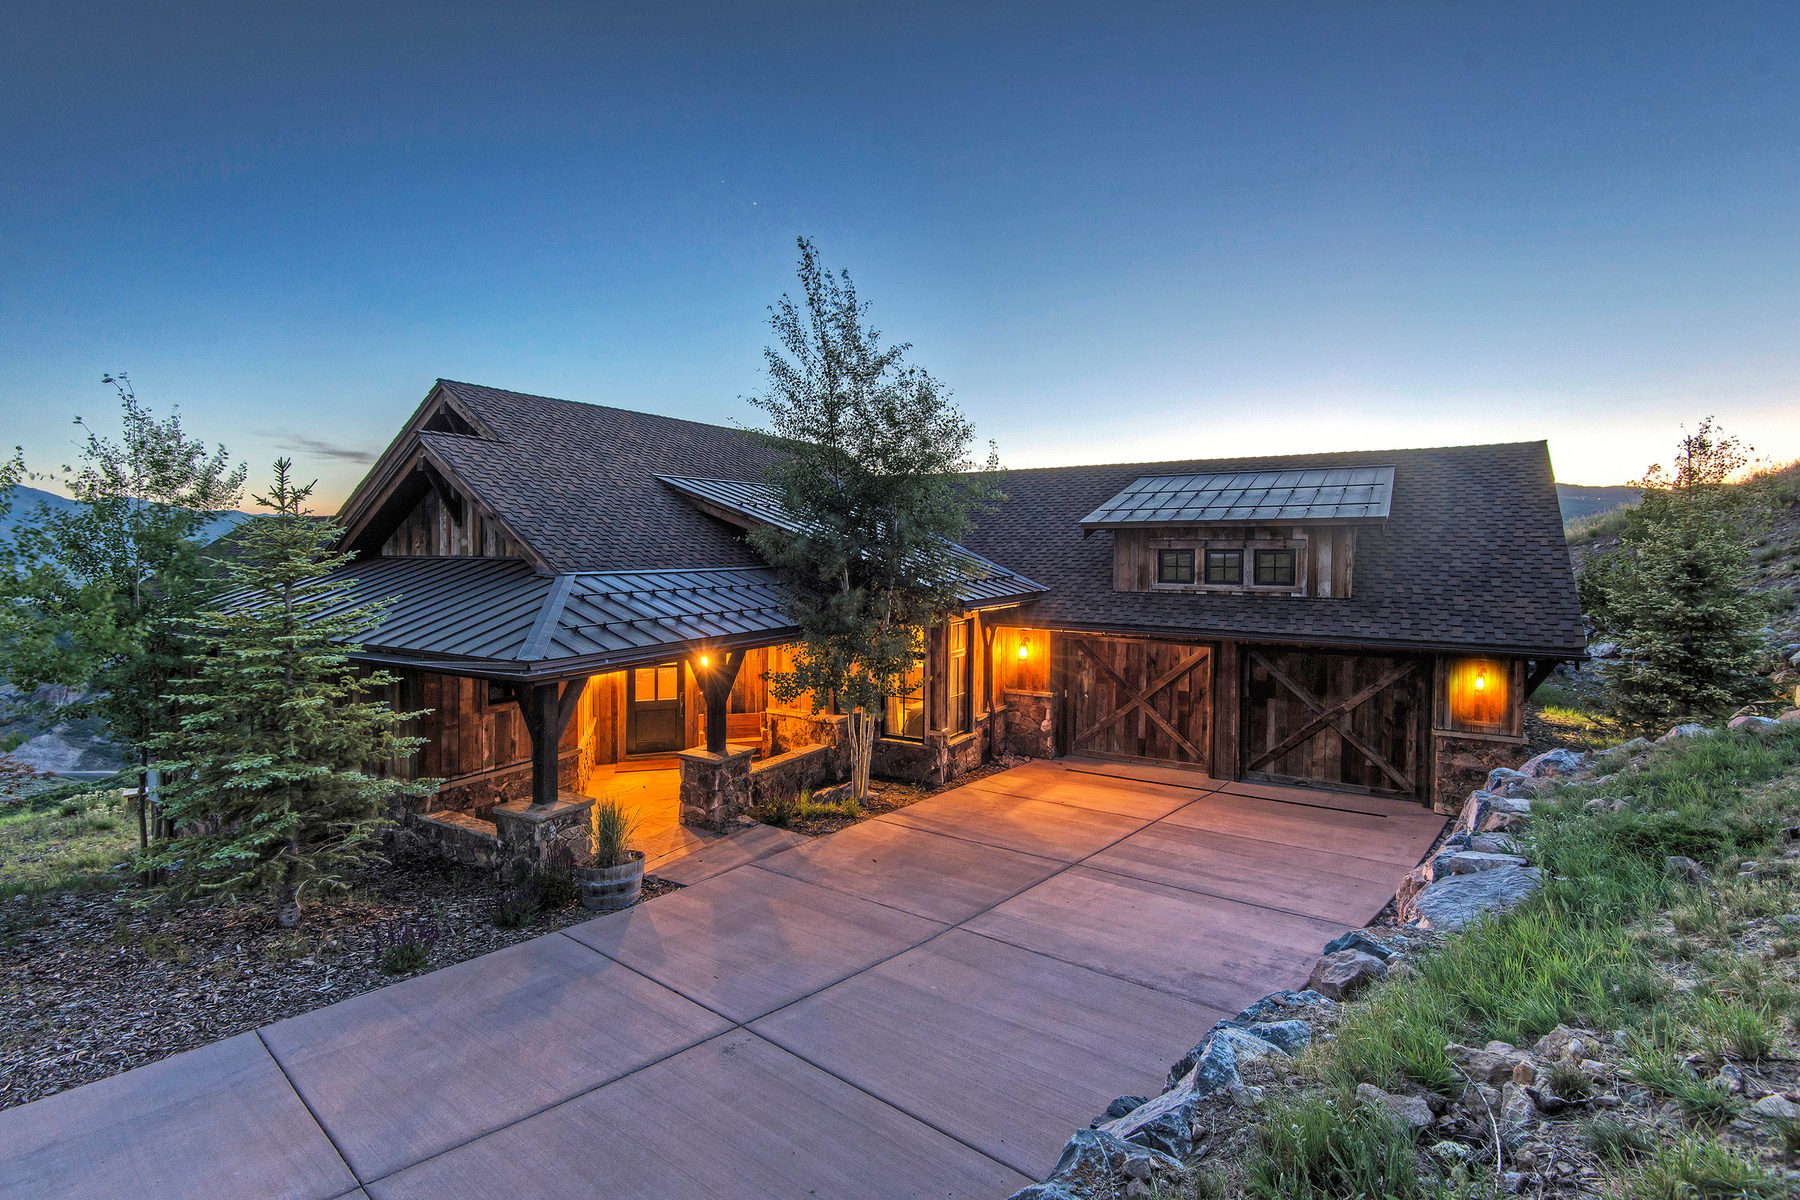 Single Family Home for Sale at Biggest View Cabin in Promontory 9243 Alice Ct Park City, Utah 84098 United States